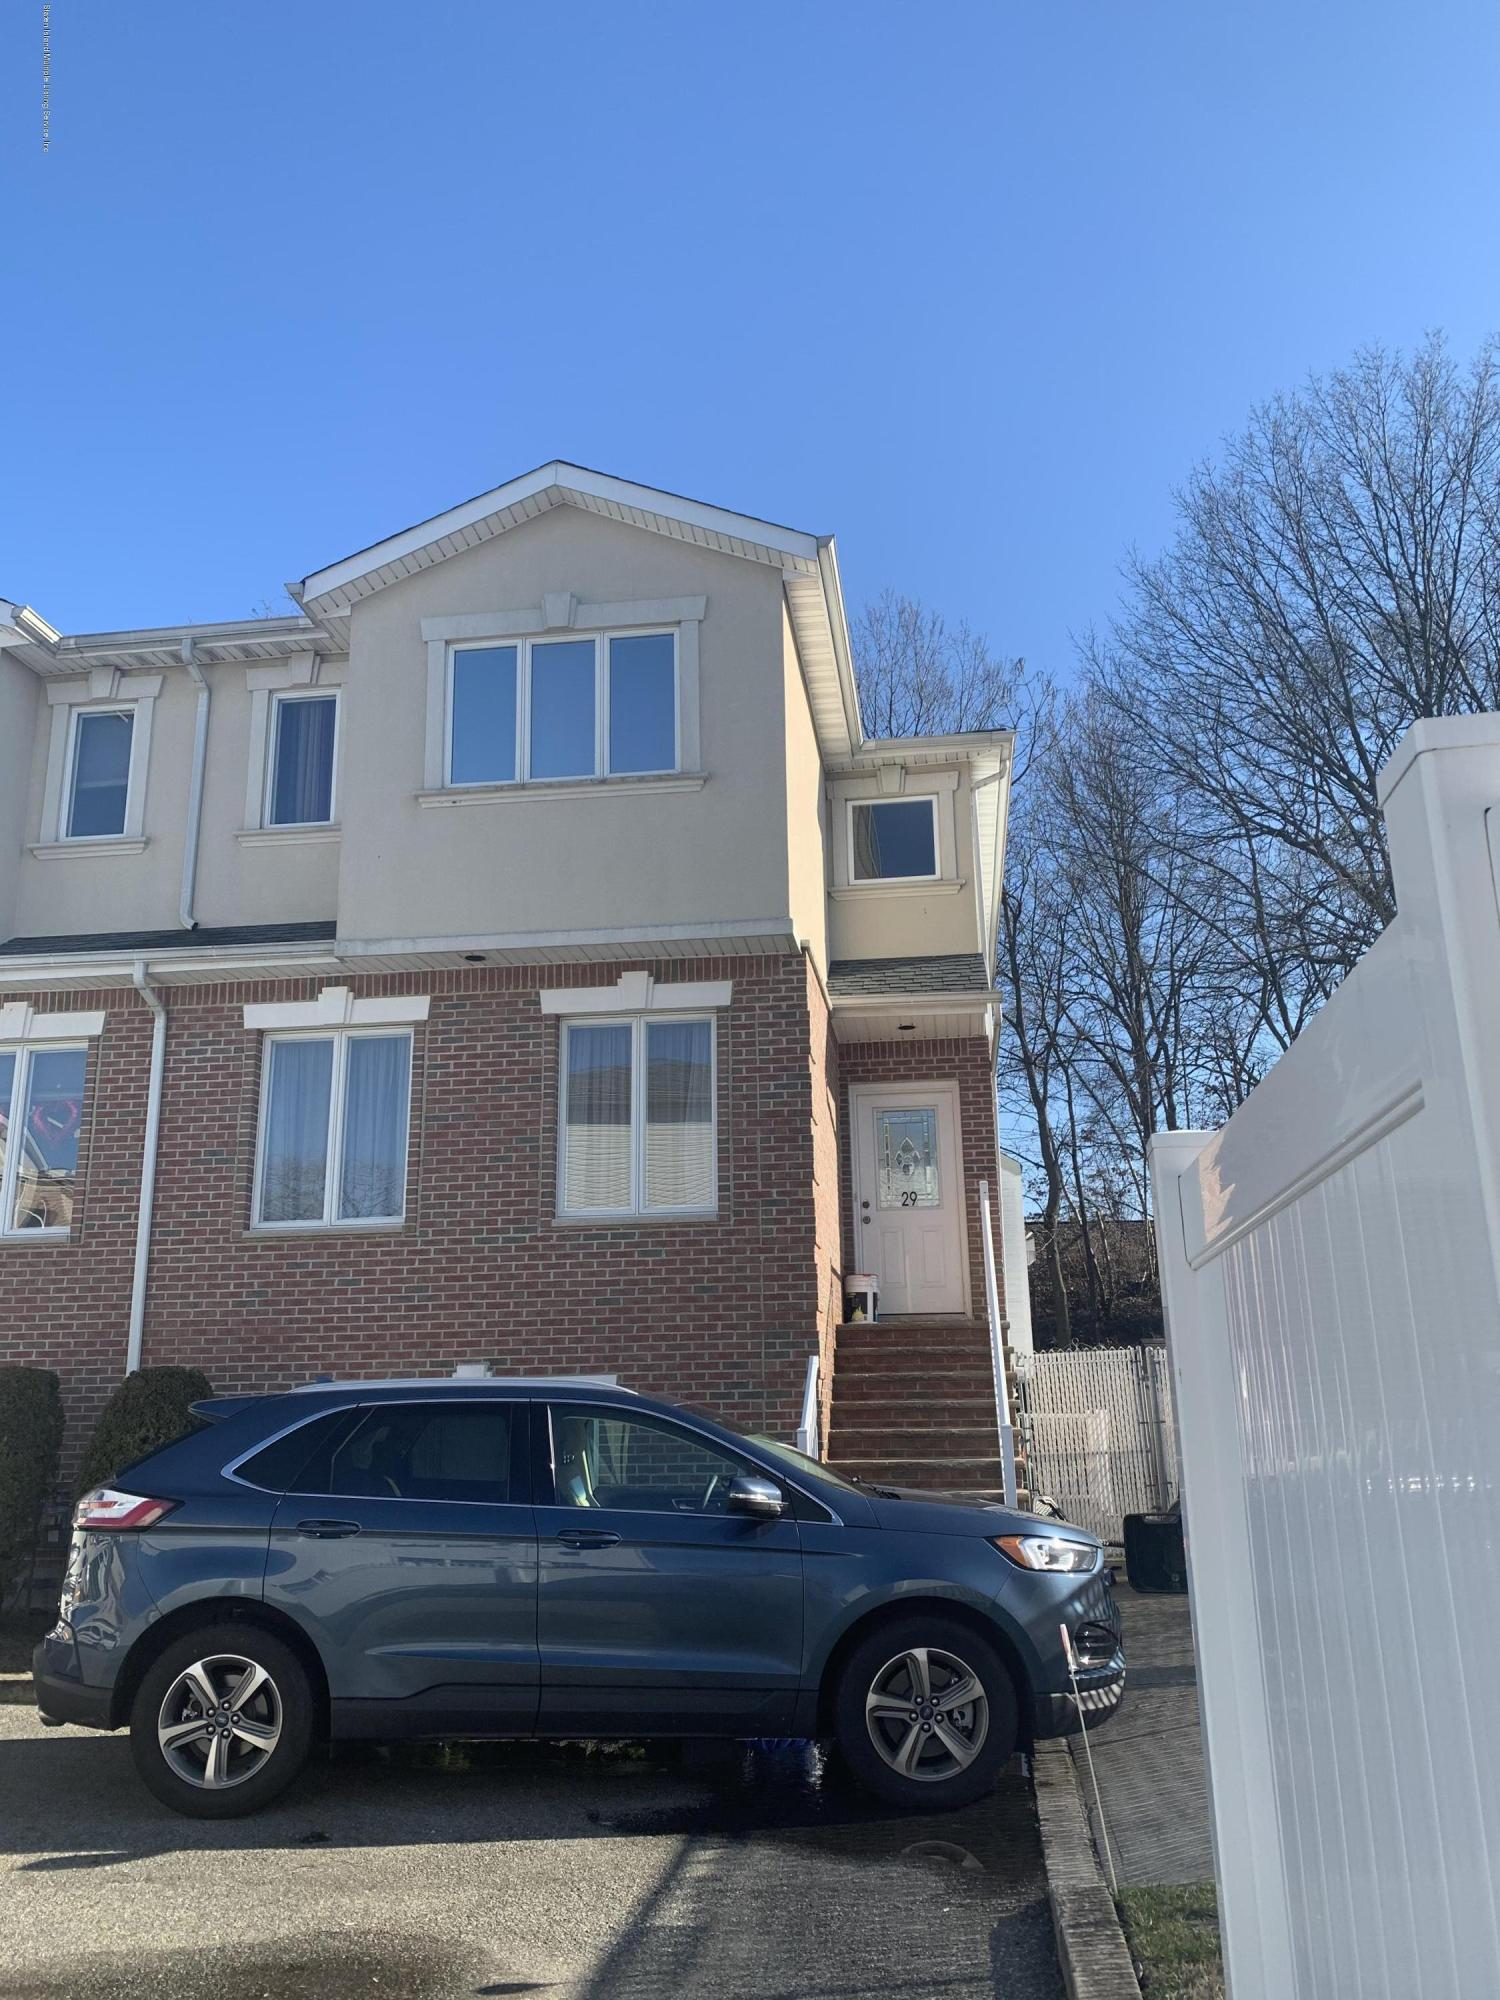 Single Family - Semi-Attached 29 Coco Court  Staten Island, NY 10312, MLS-1135689-2